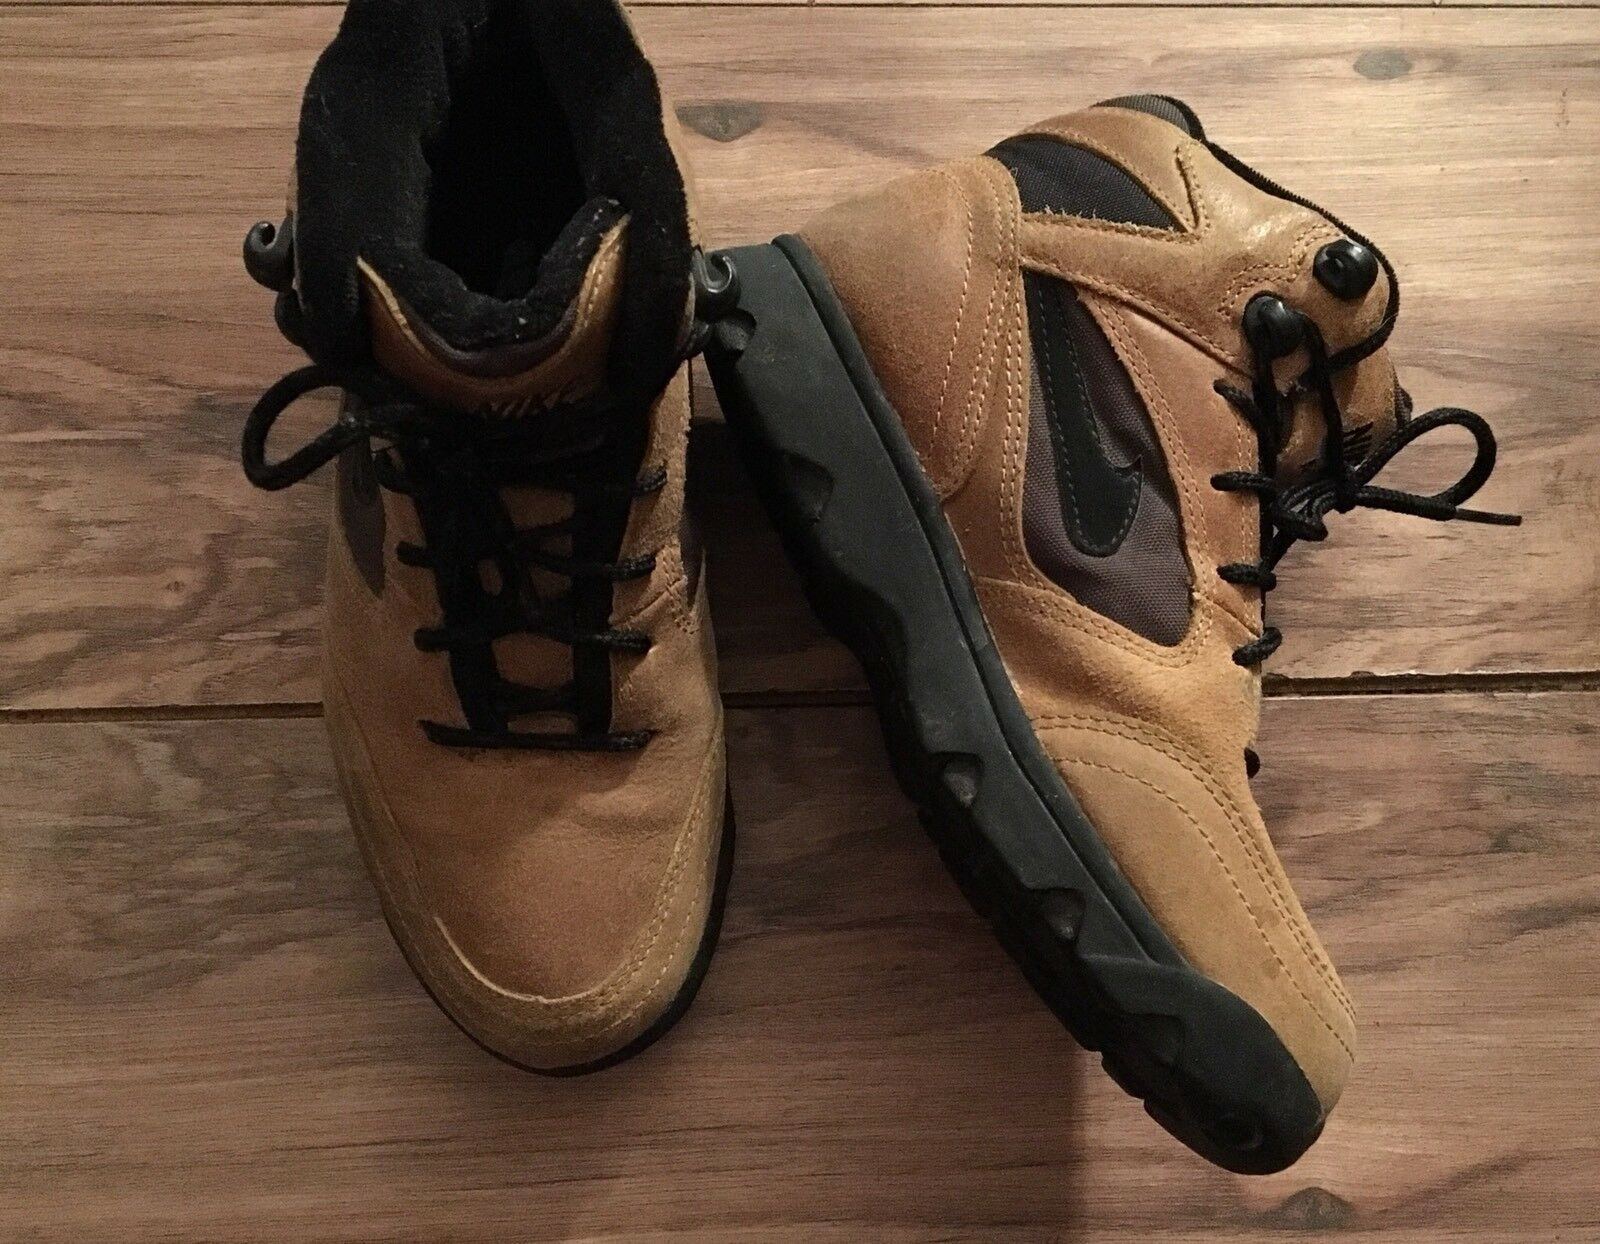 Vintage 90s 1994 Men's Nike Air ACG Boots shoes Size 6.5 940608-ID